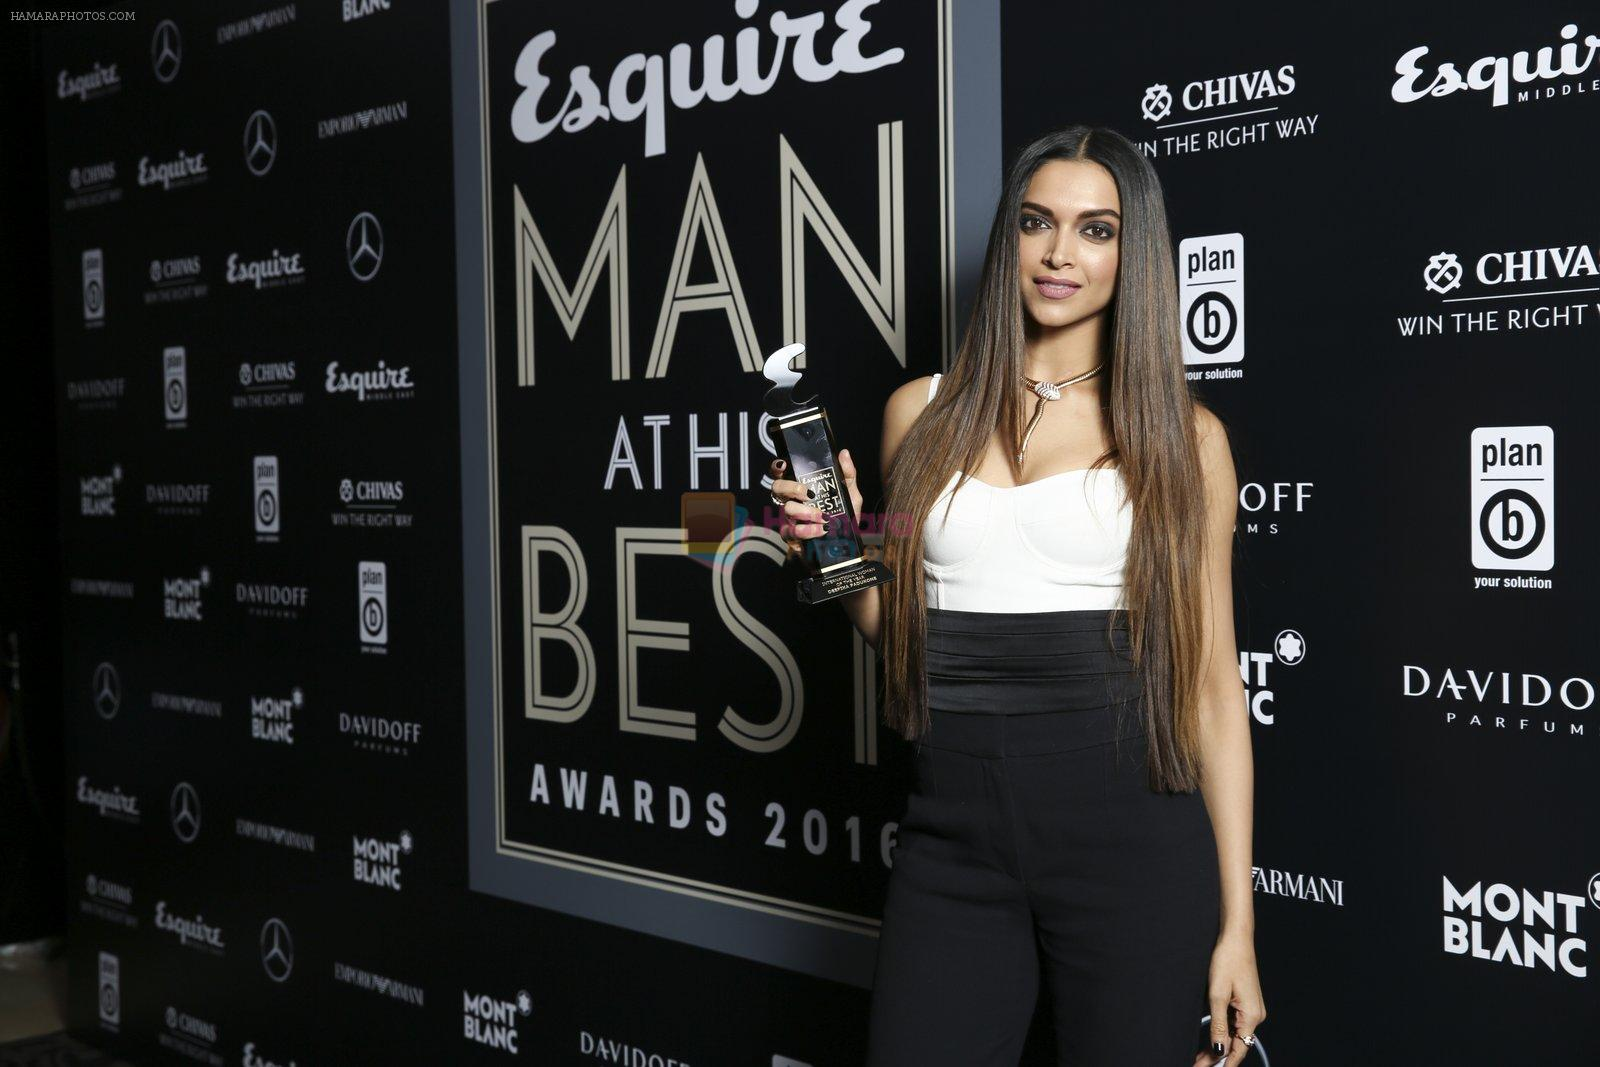 Deepika Padukone at Esquire Man at his best awards on 30th Nov 2016